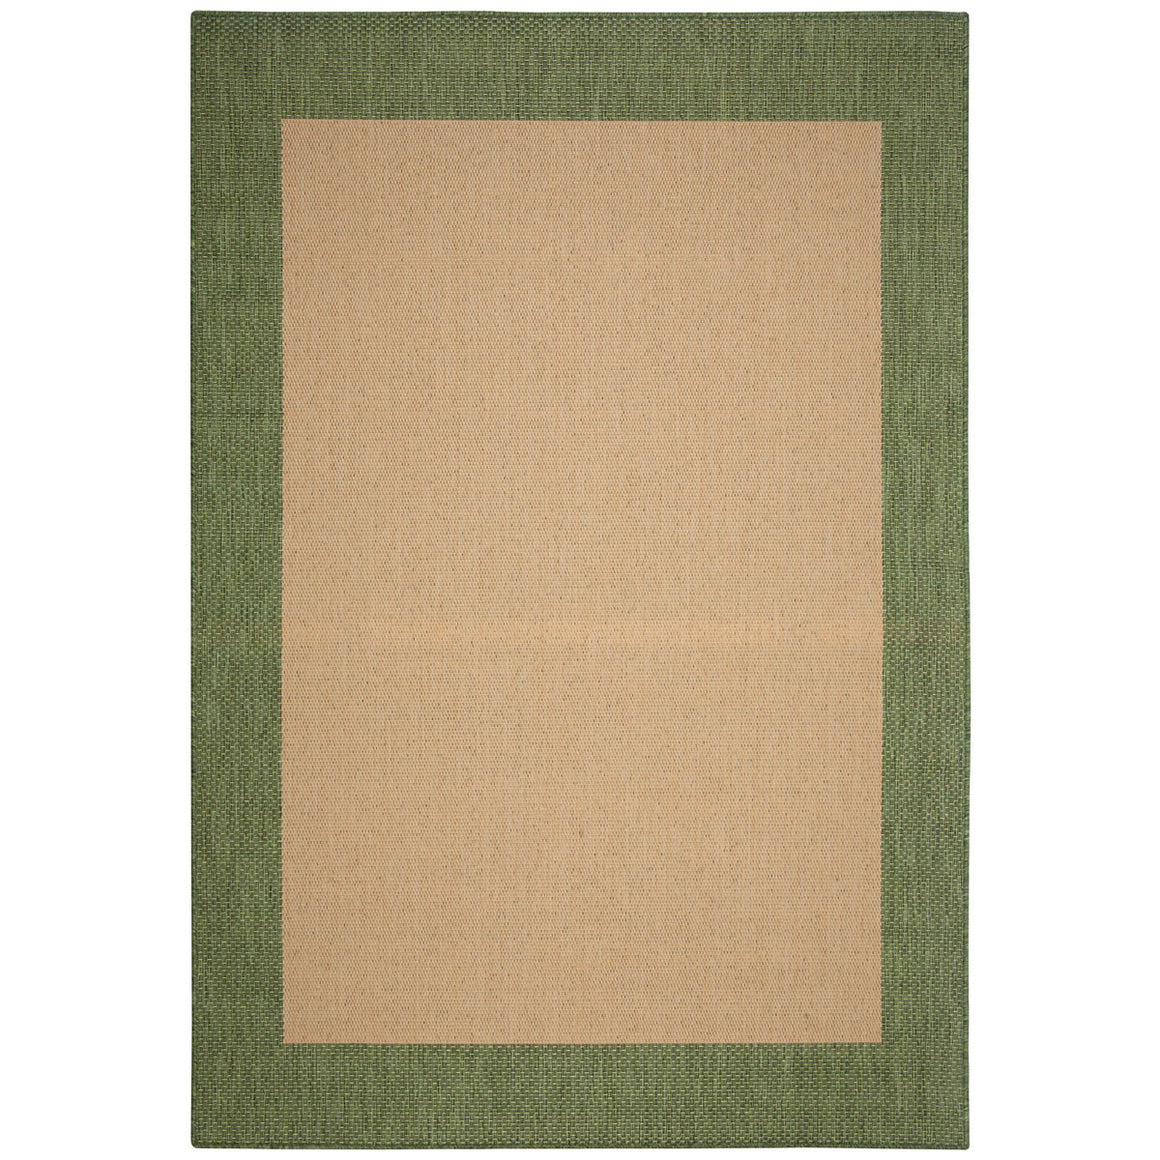 Islander Natural Green Outdoor Porch Rug